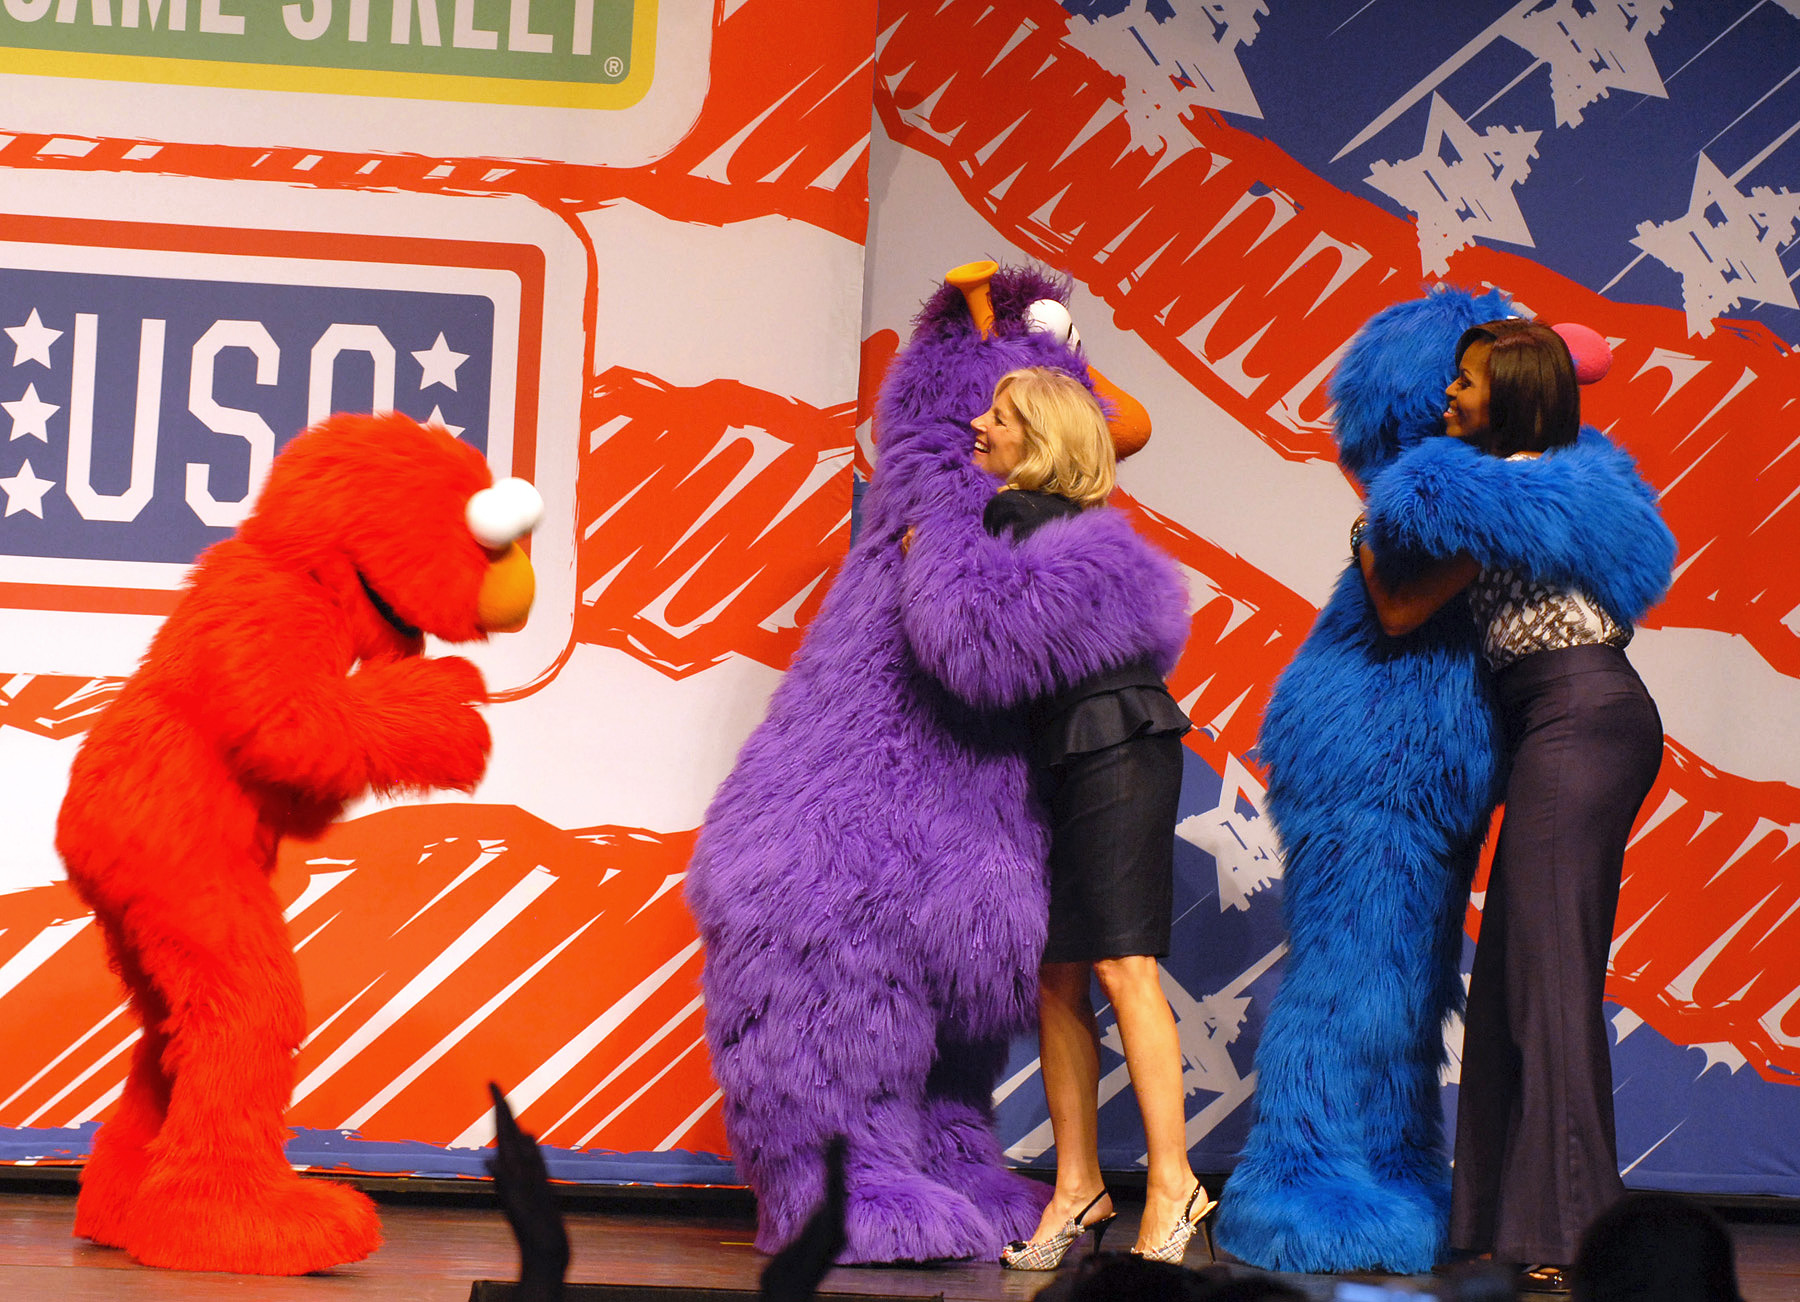 file jill biden and michelle obama greet sesame street muppets file jill biden and michelle obama greet sesame street muppets telly and grover while elmo